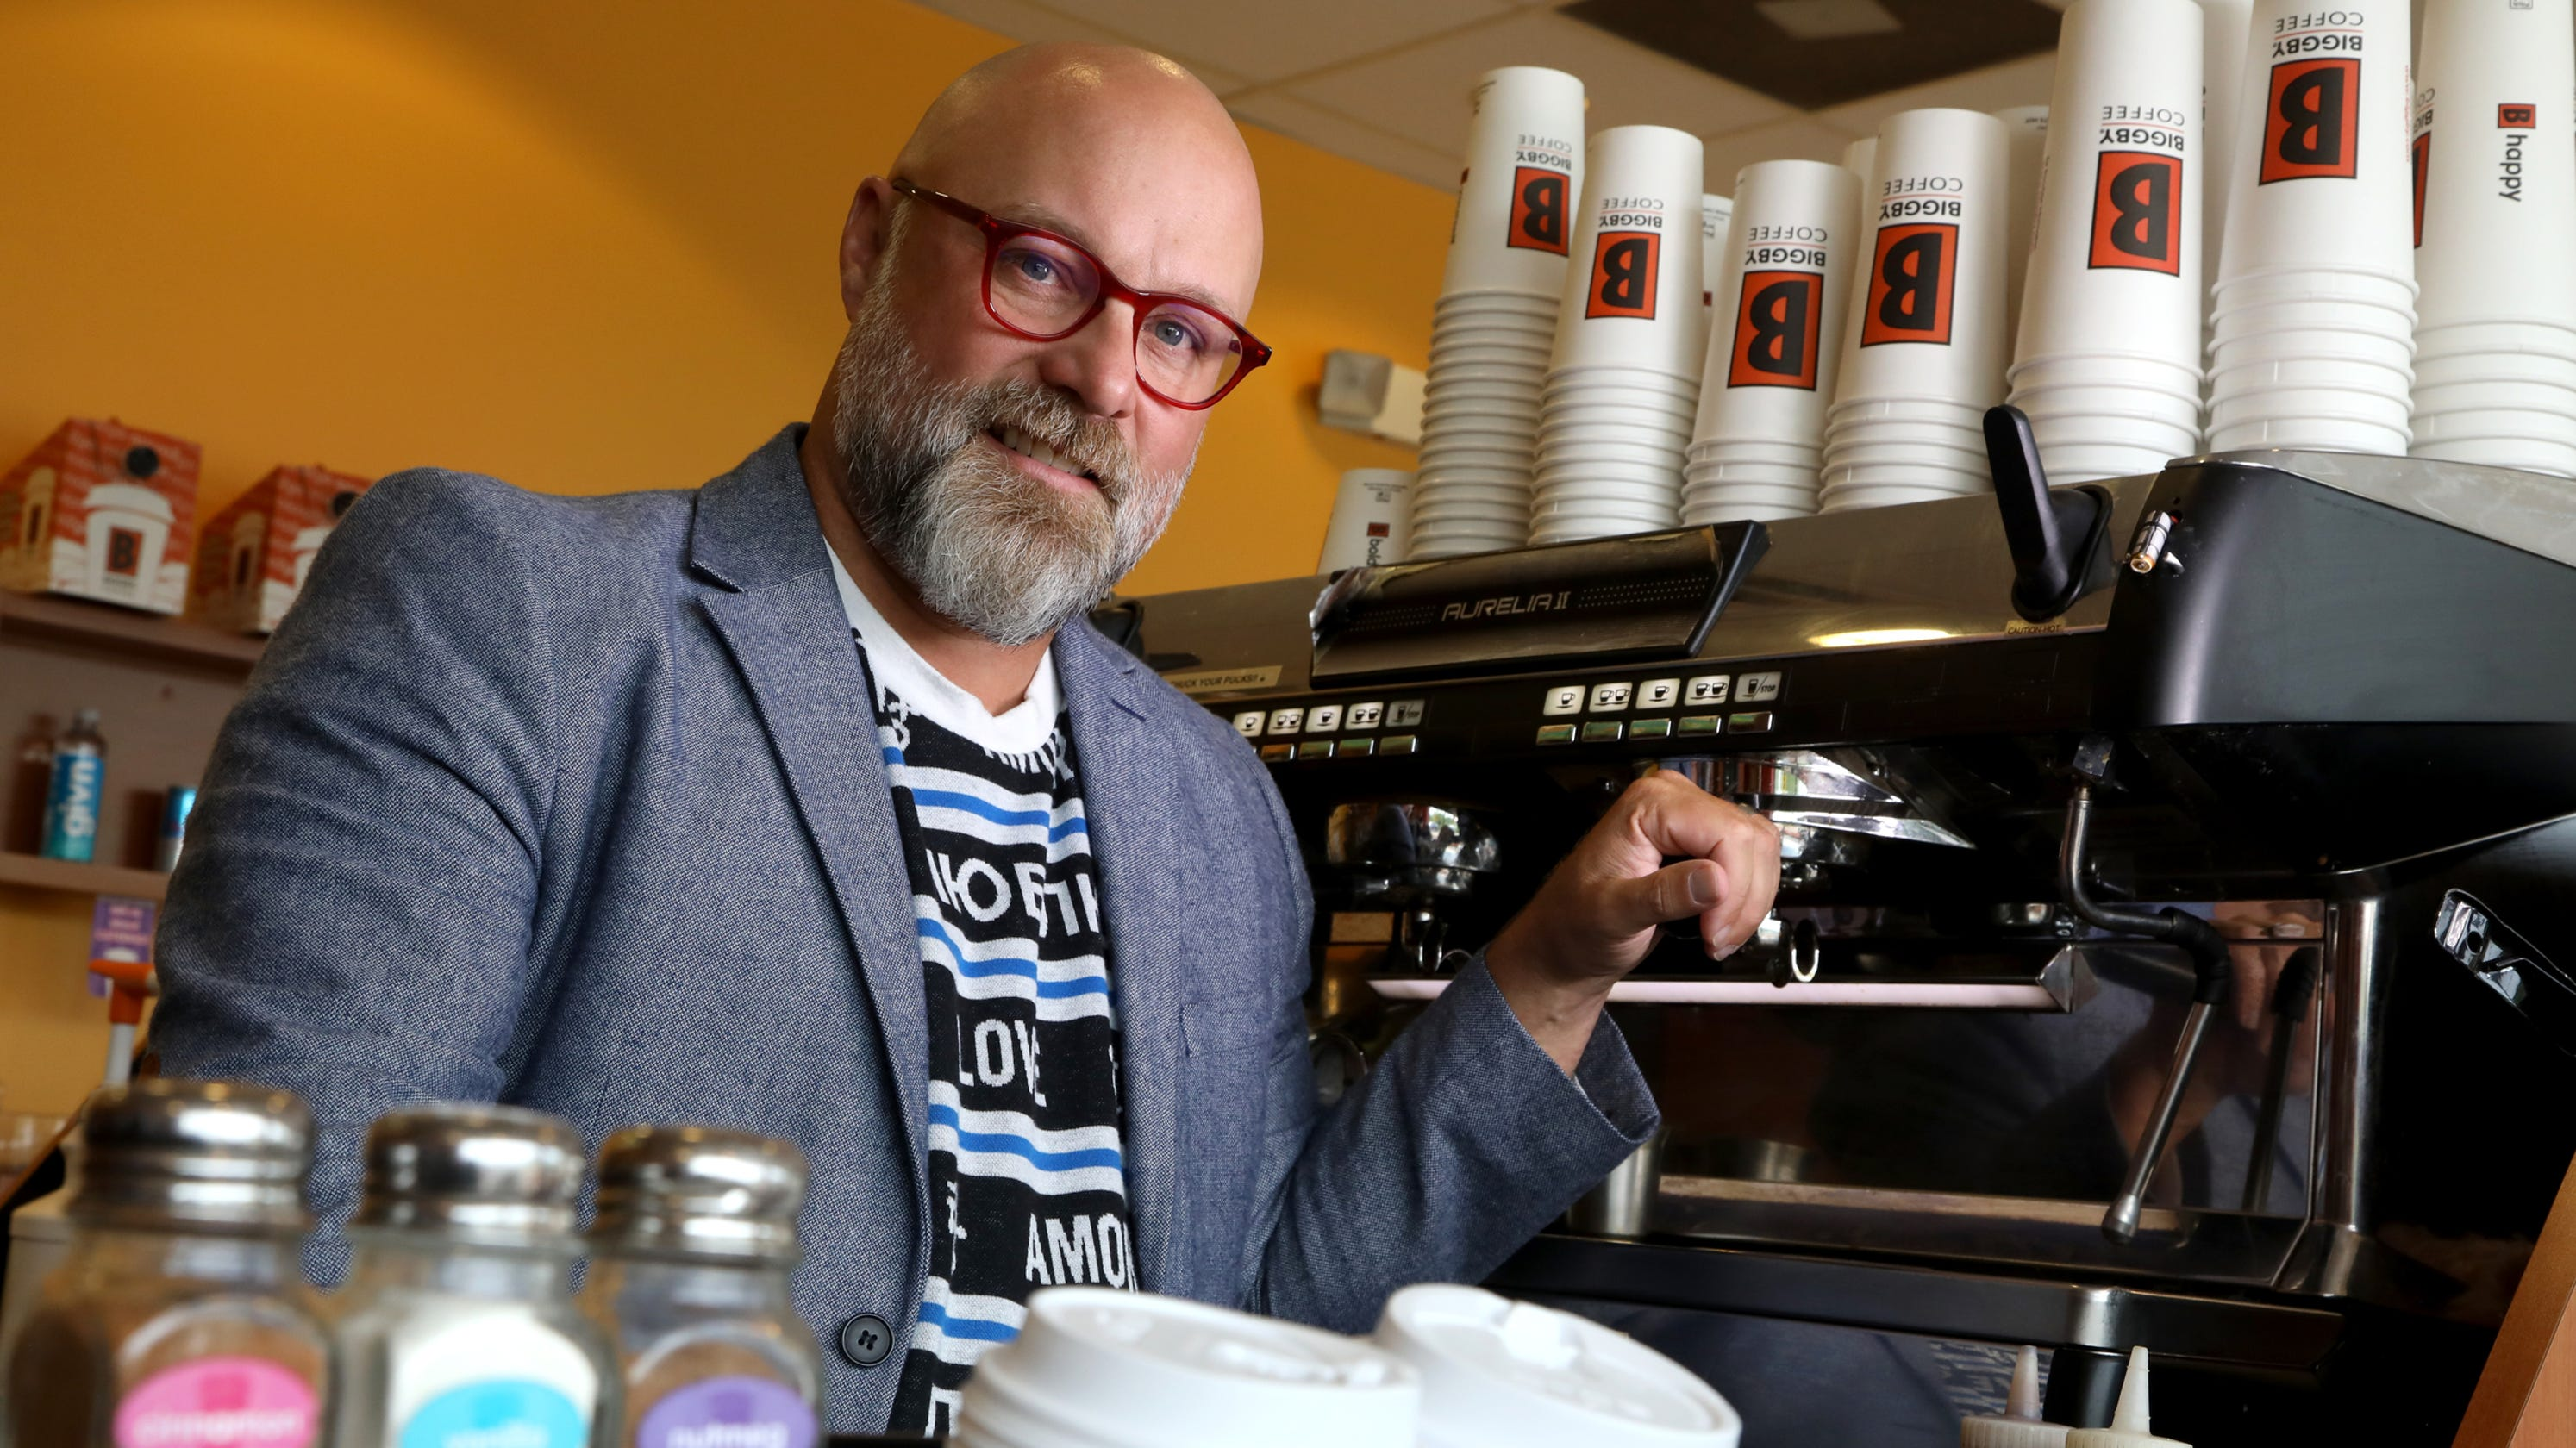 Biggby Coffee Co-CEO Drinks 14 Espressos A Day